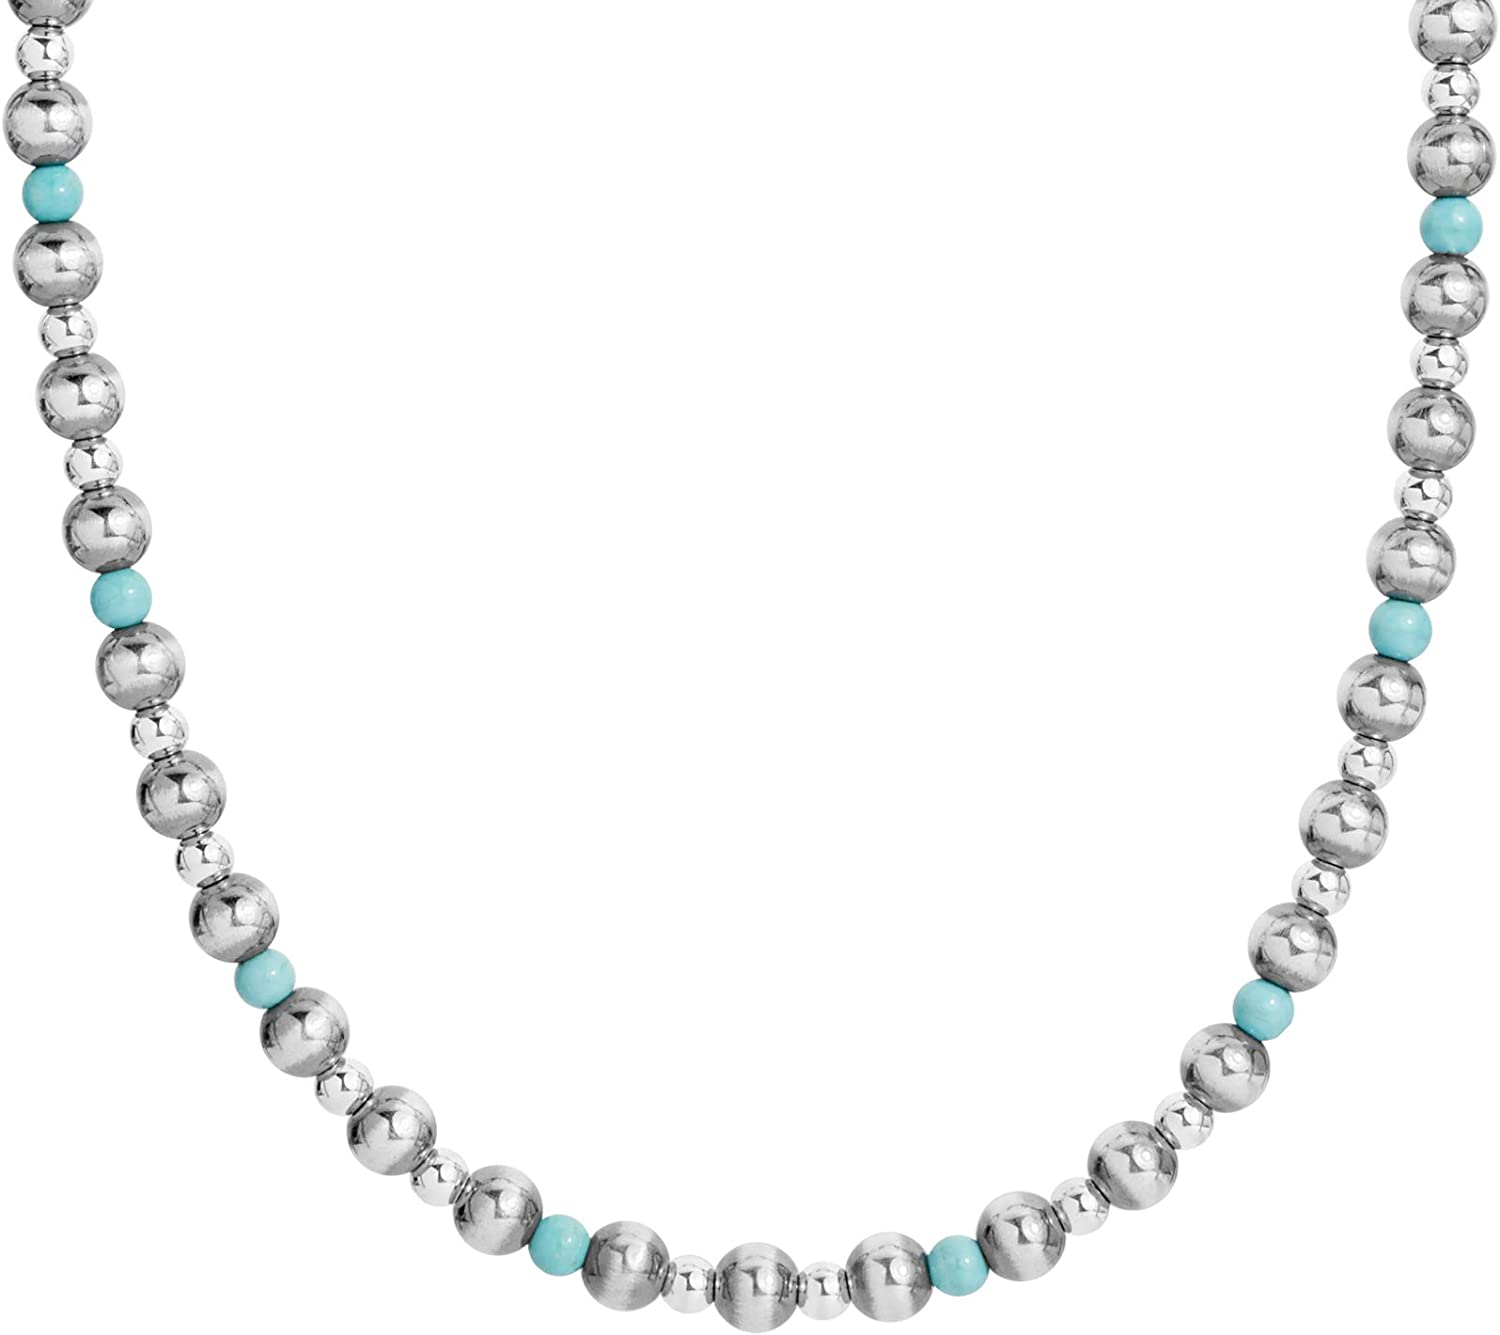 American West まとめ買い特価 Sterling Silver Choice of 期間限定送料無料 Beaded Necklace Gemstone